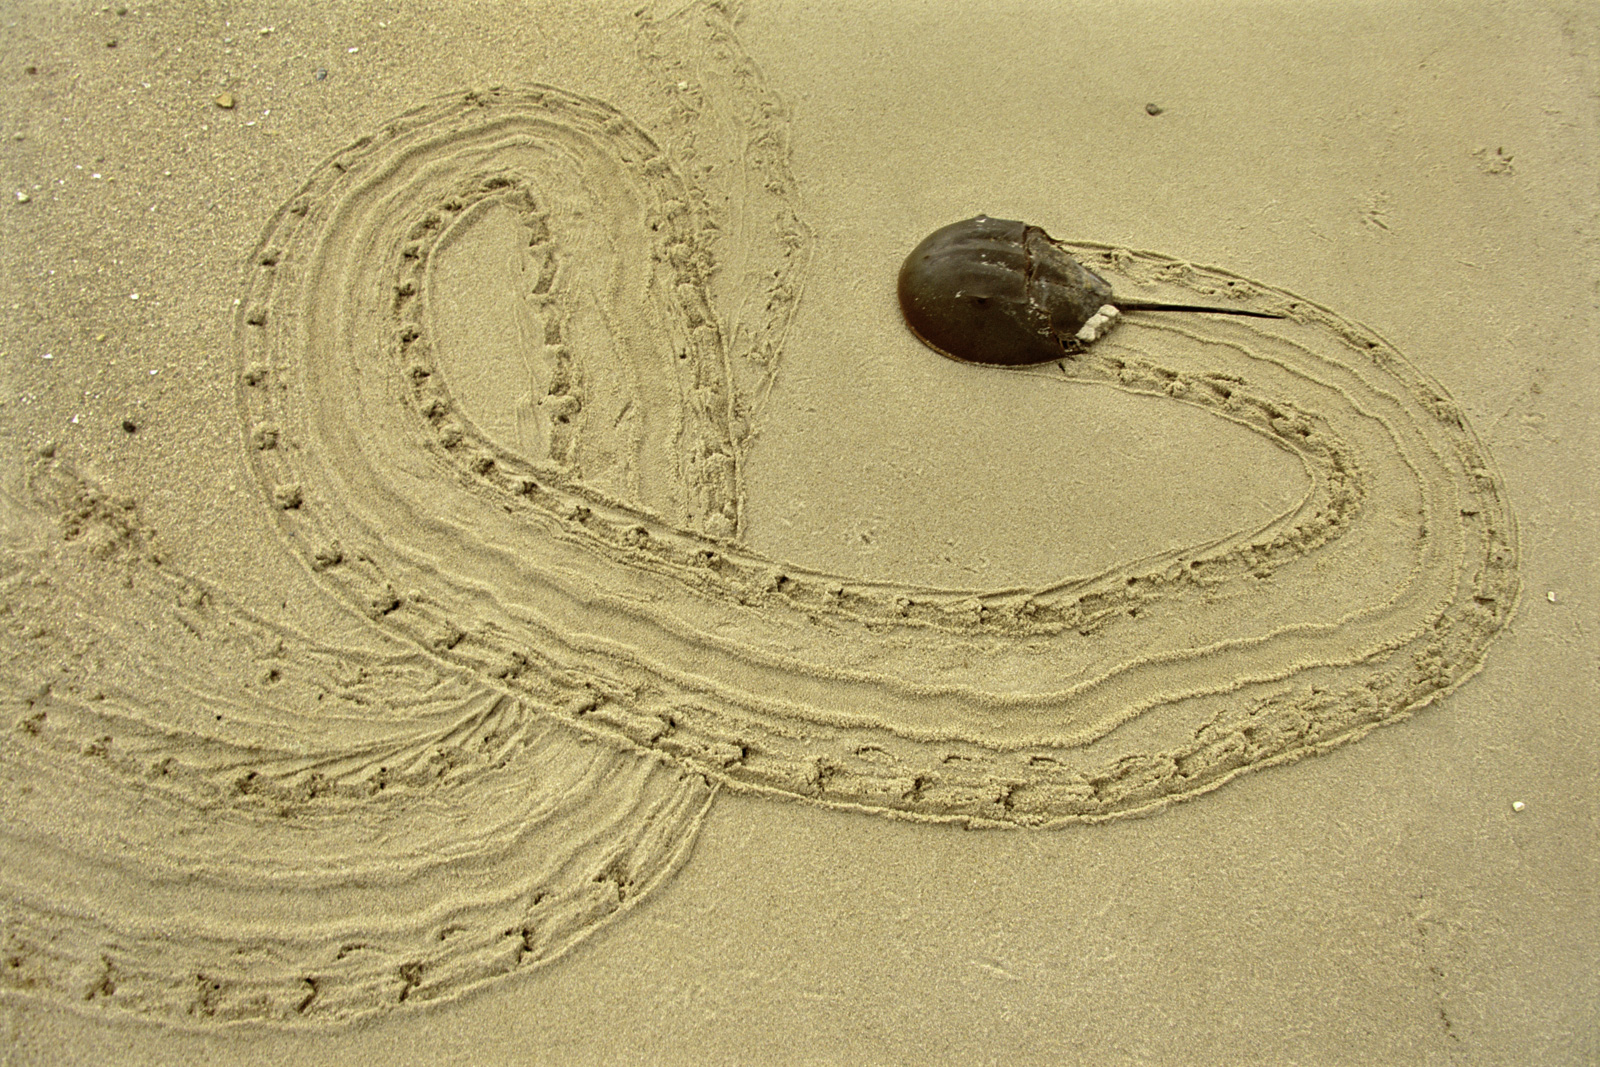 Horseshoe crab on beach, Delaware Bay, New Jersey, USA